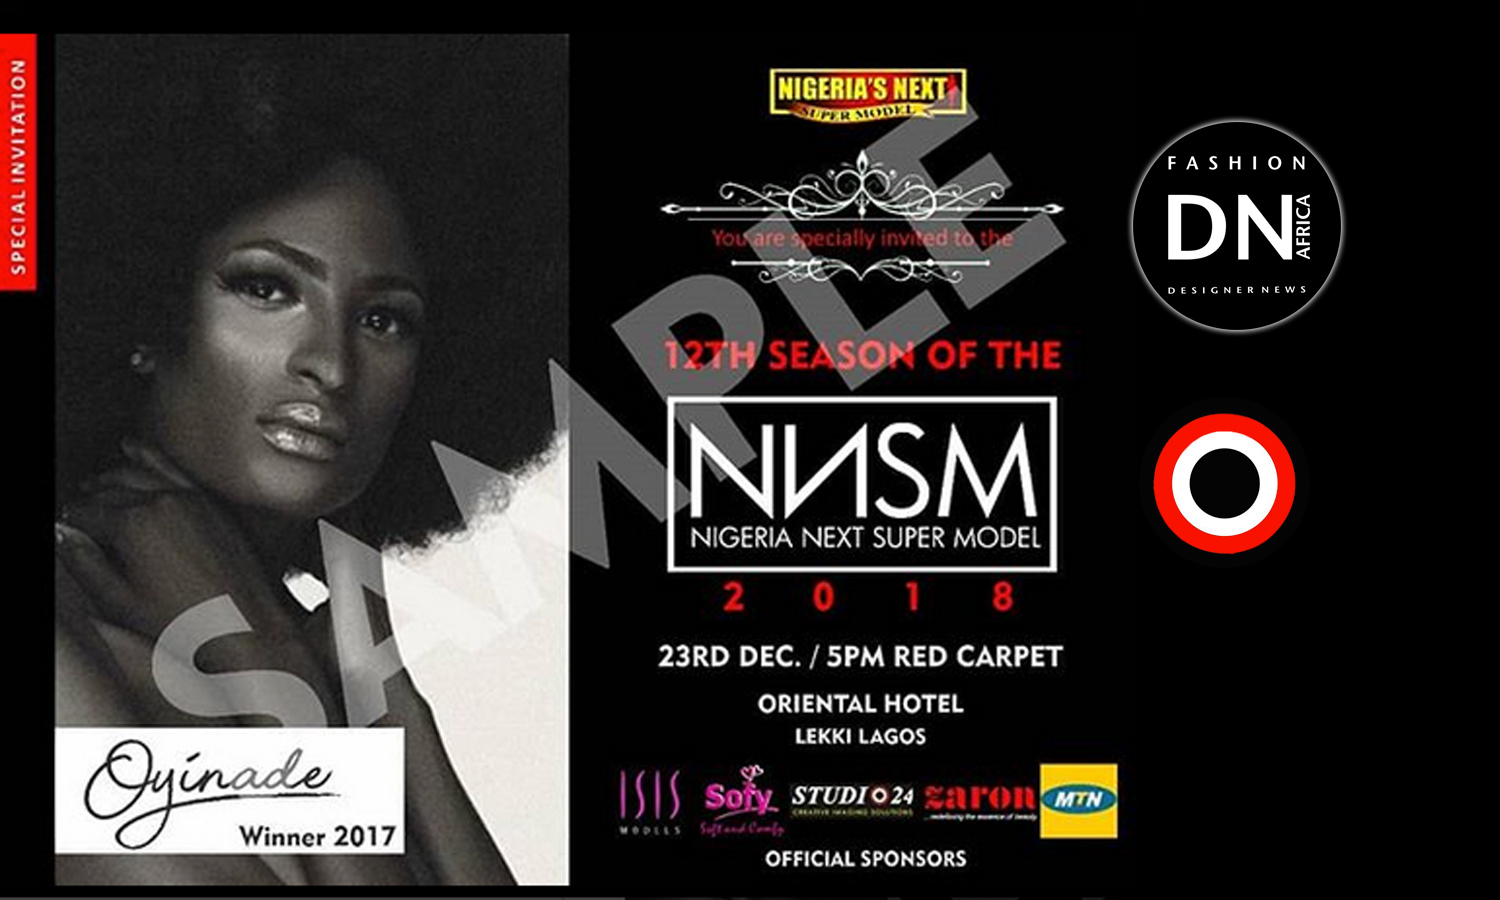 AFRICAN FASHION STYLE MAGAZINE - NNSM-2018 - SEASON 12 - NIGERIAS-NEXT-SUPER-MODEL-BY-JOAN-OKORODUDU-AND-ISIS-MODELS AFRICA - Official Media Partner DN AFRICA -STUDIO 24 NIGERIA - STUDIO 24 INTERNATIONAL - Ifeanyi Christopher Oputa MD AND CEO OF COLVI LIMITED AND STUDIO 24